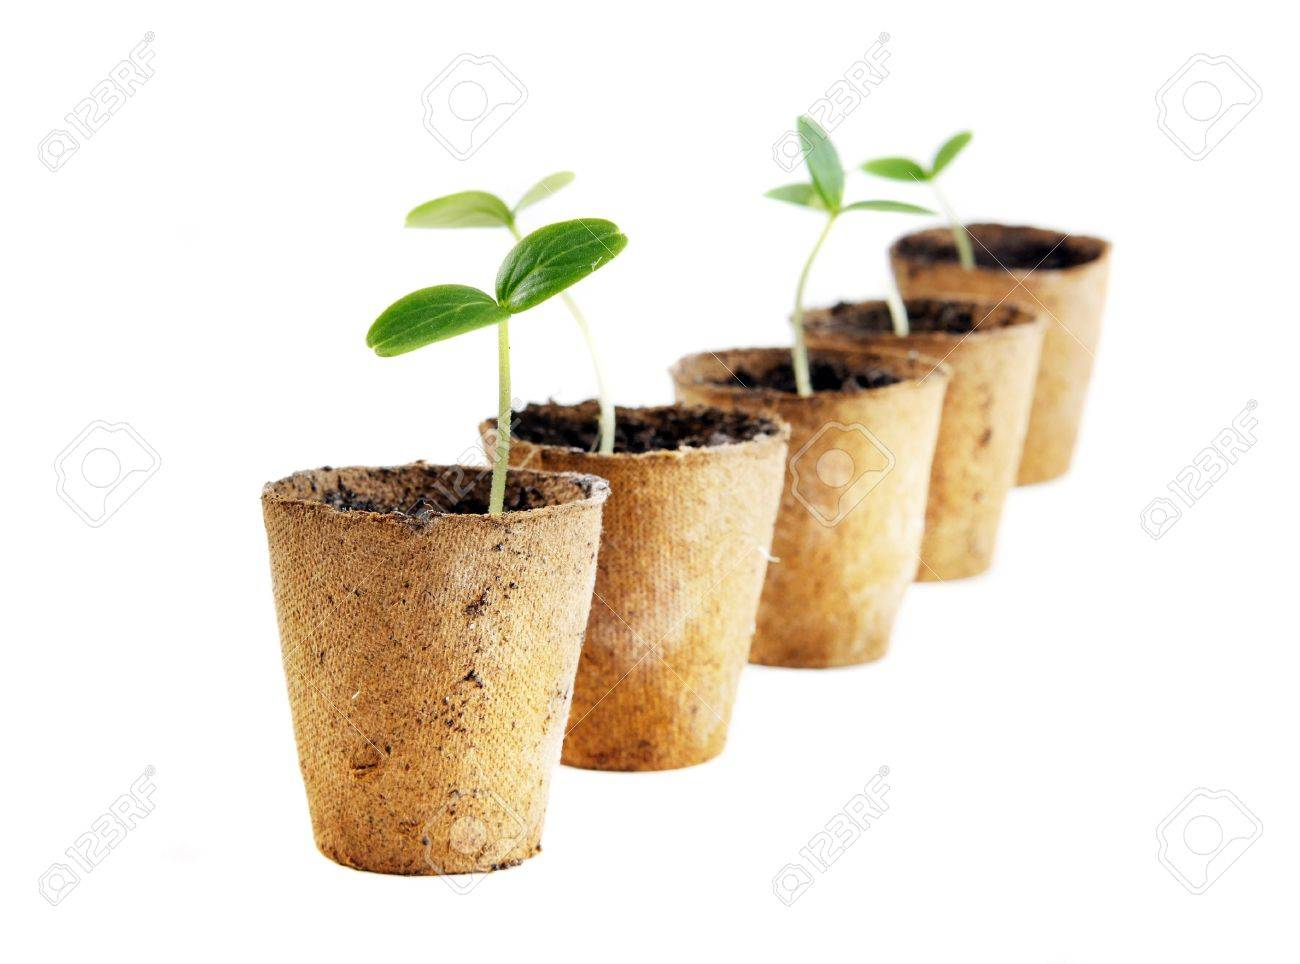 Young fresh seedling stands in peat pots on a white background Stock Photo - 9469145